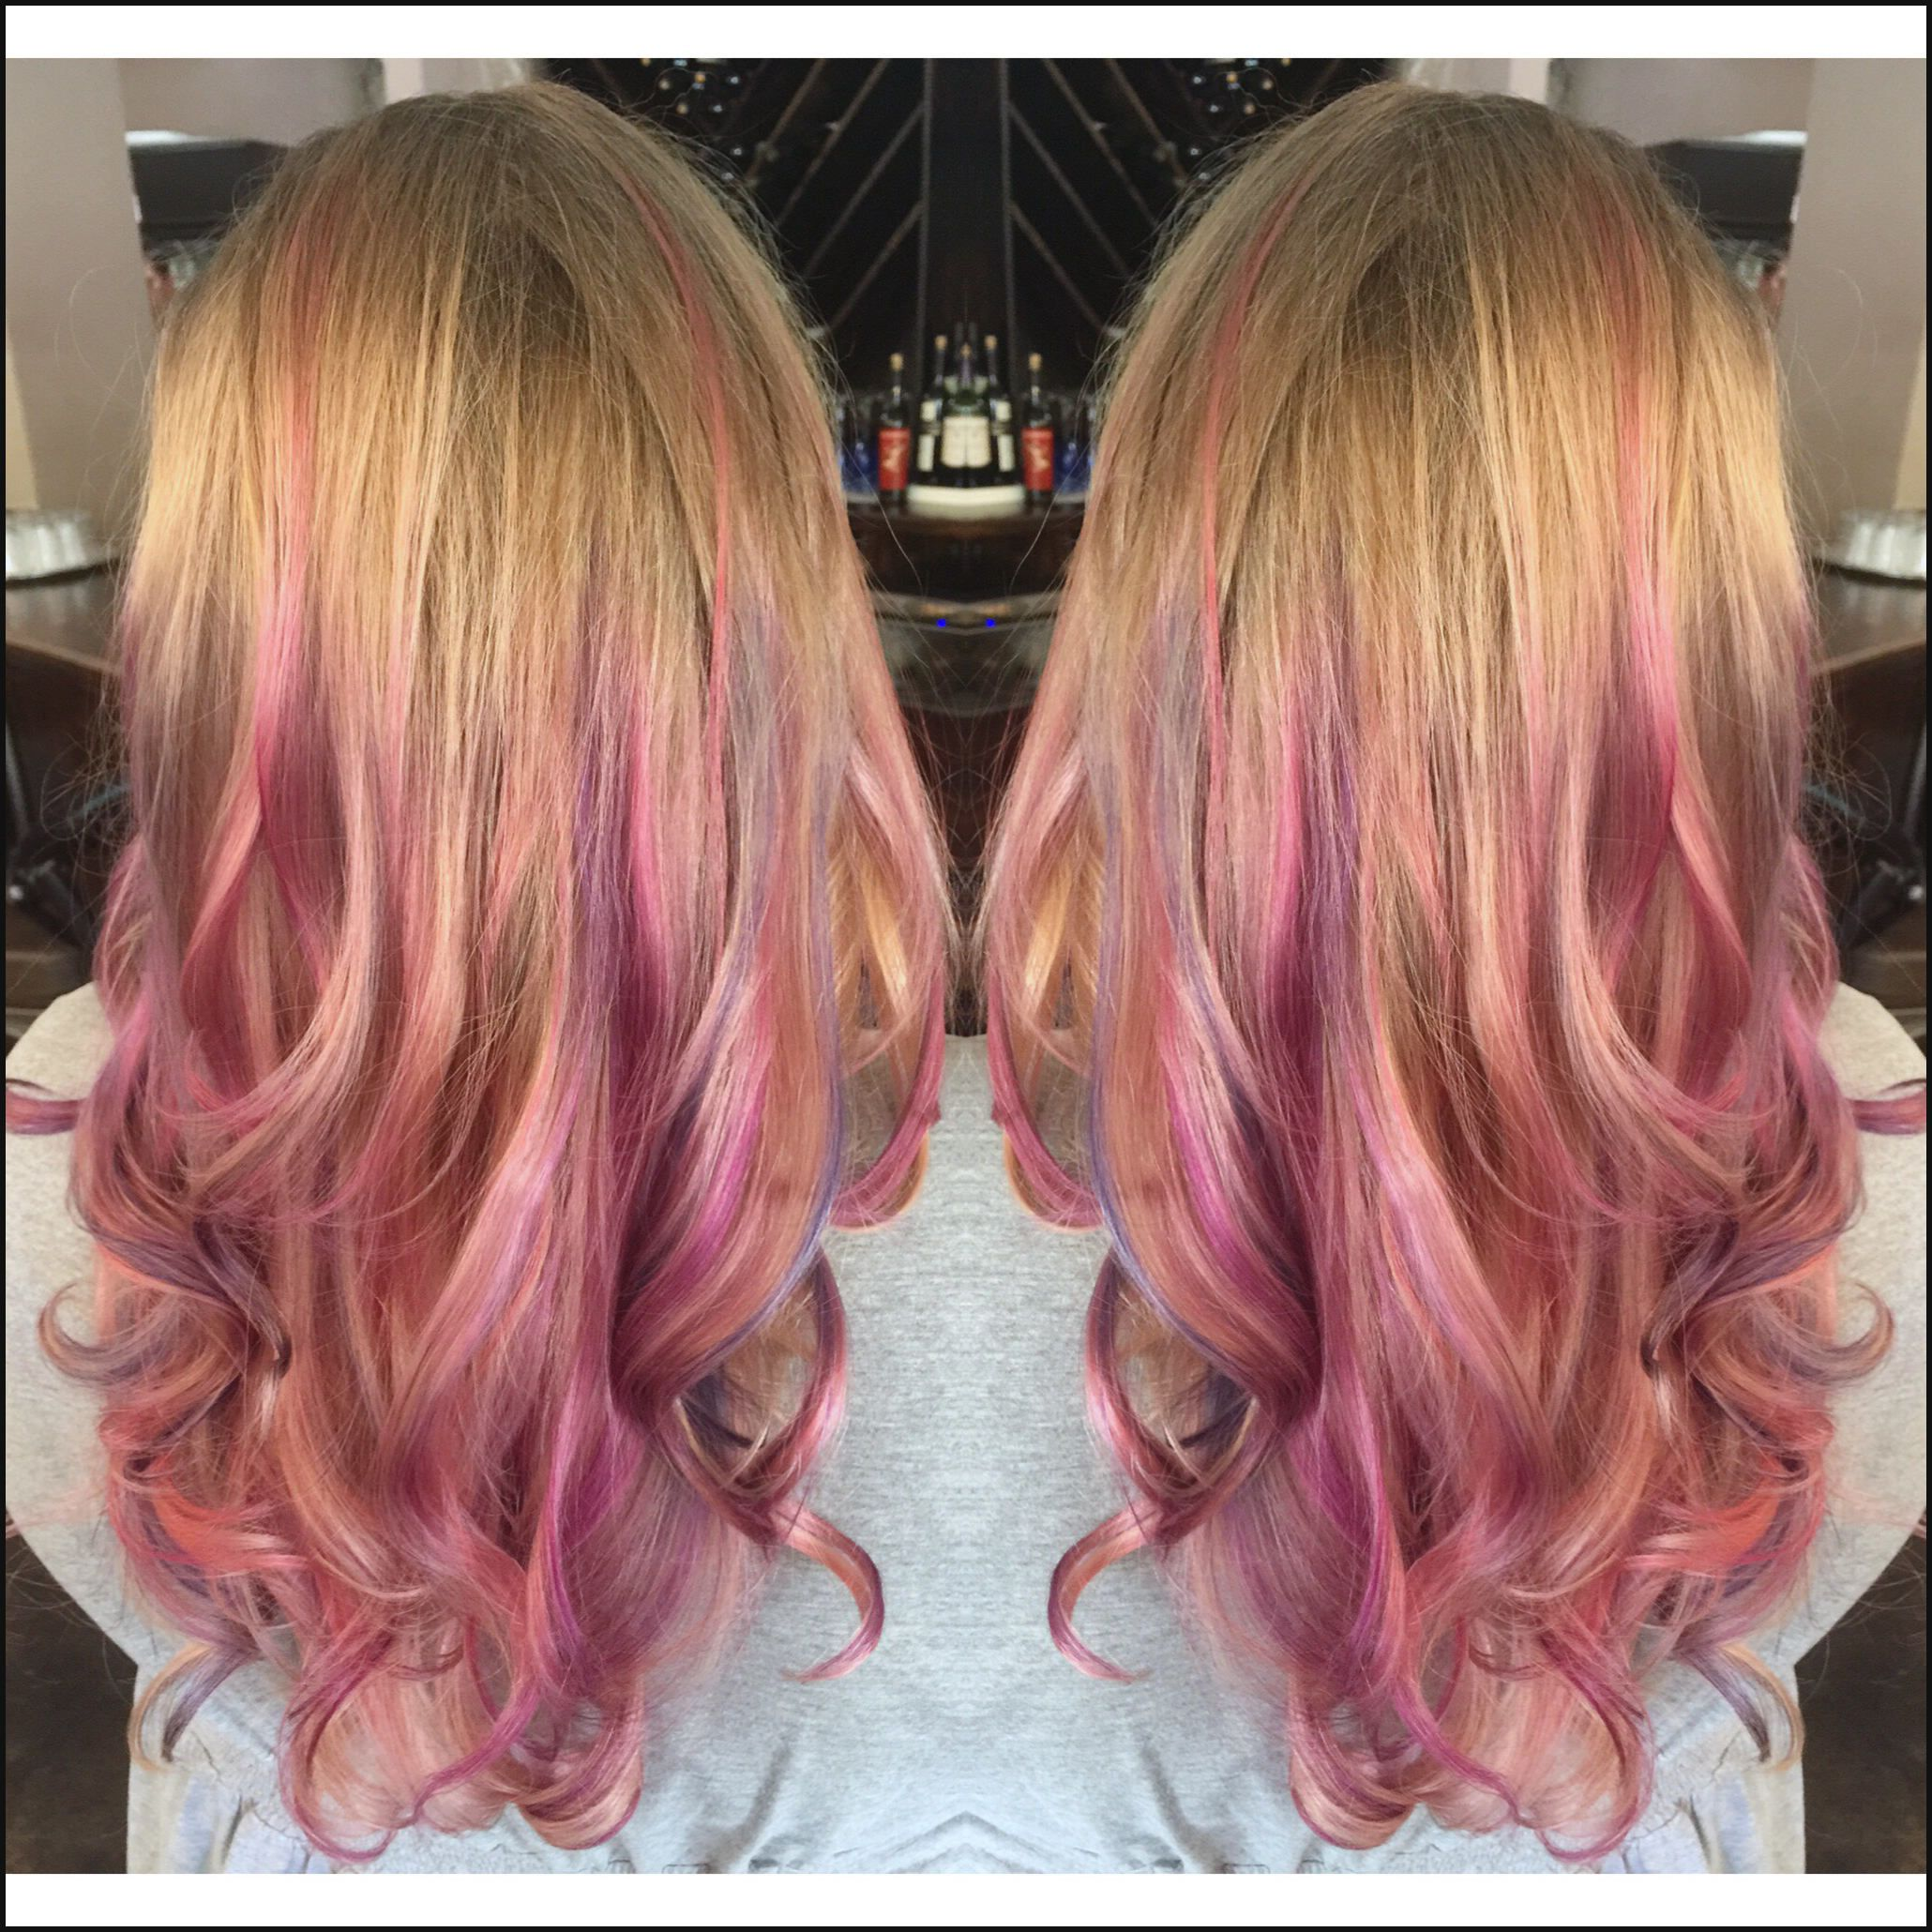 Dark Blonde To Light Blonde Balayage Ombre Pink And Purple Hair